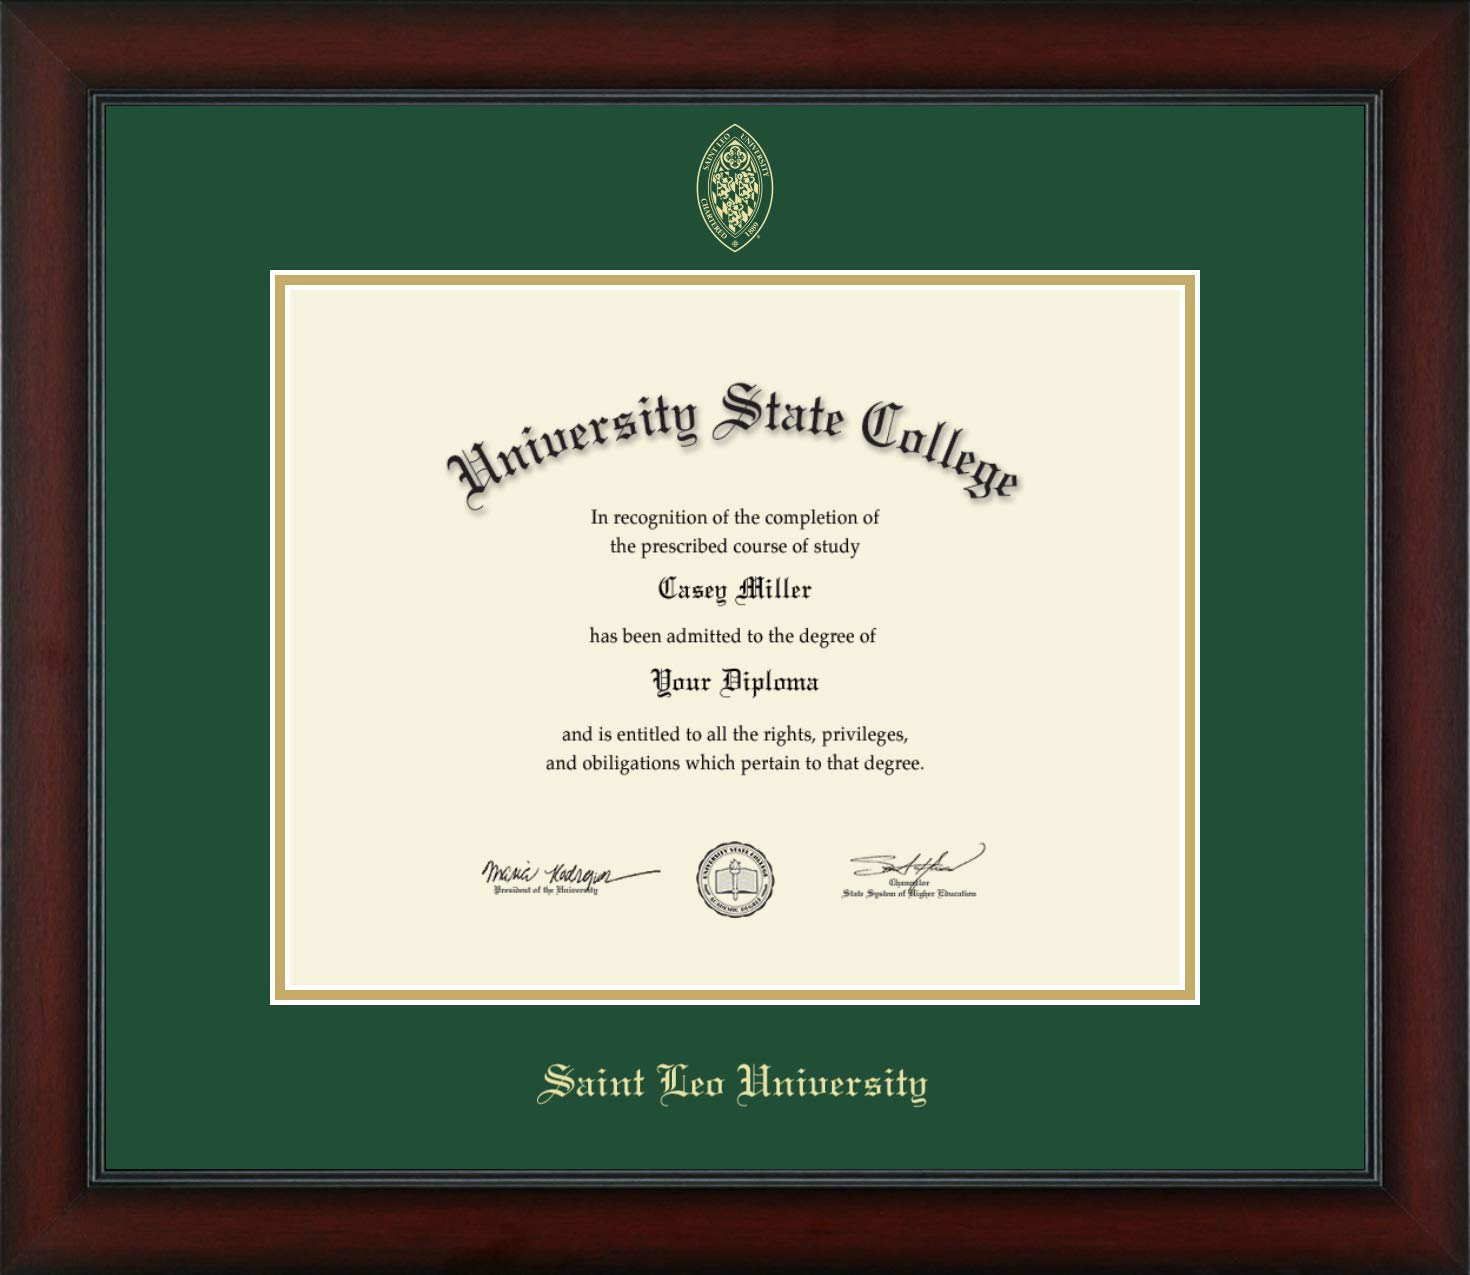 Saint Leo University - Officially Licensed - Masters/PhD - Gold Embossed Diploma Frame - Diploma Size 14'' x 11''